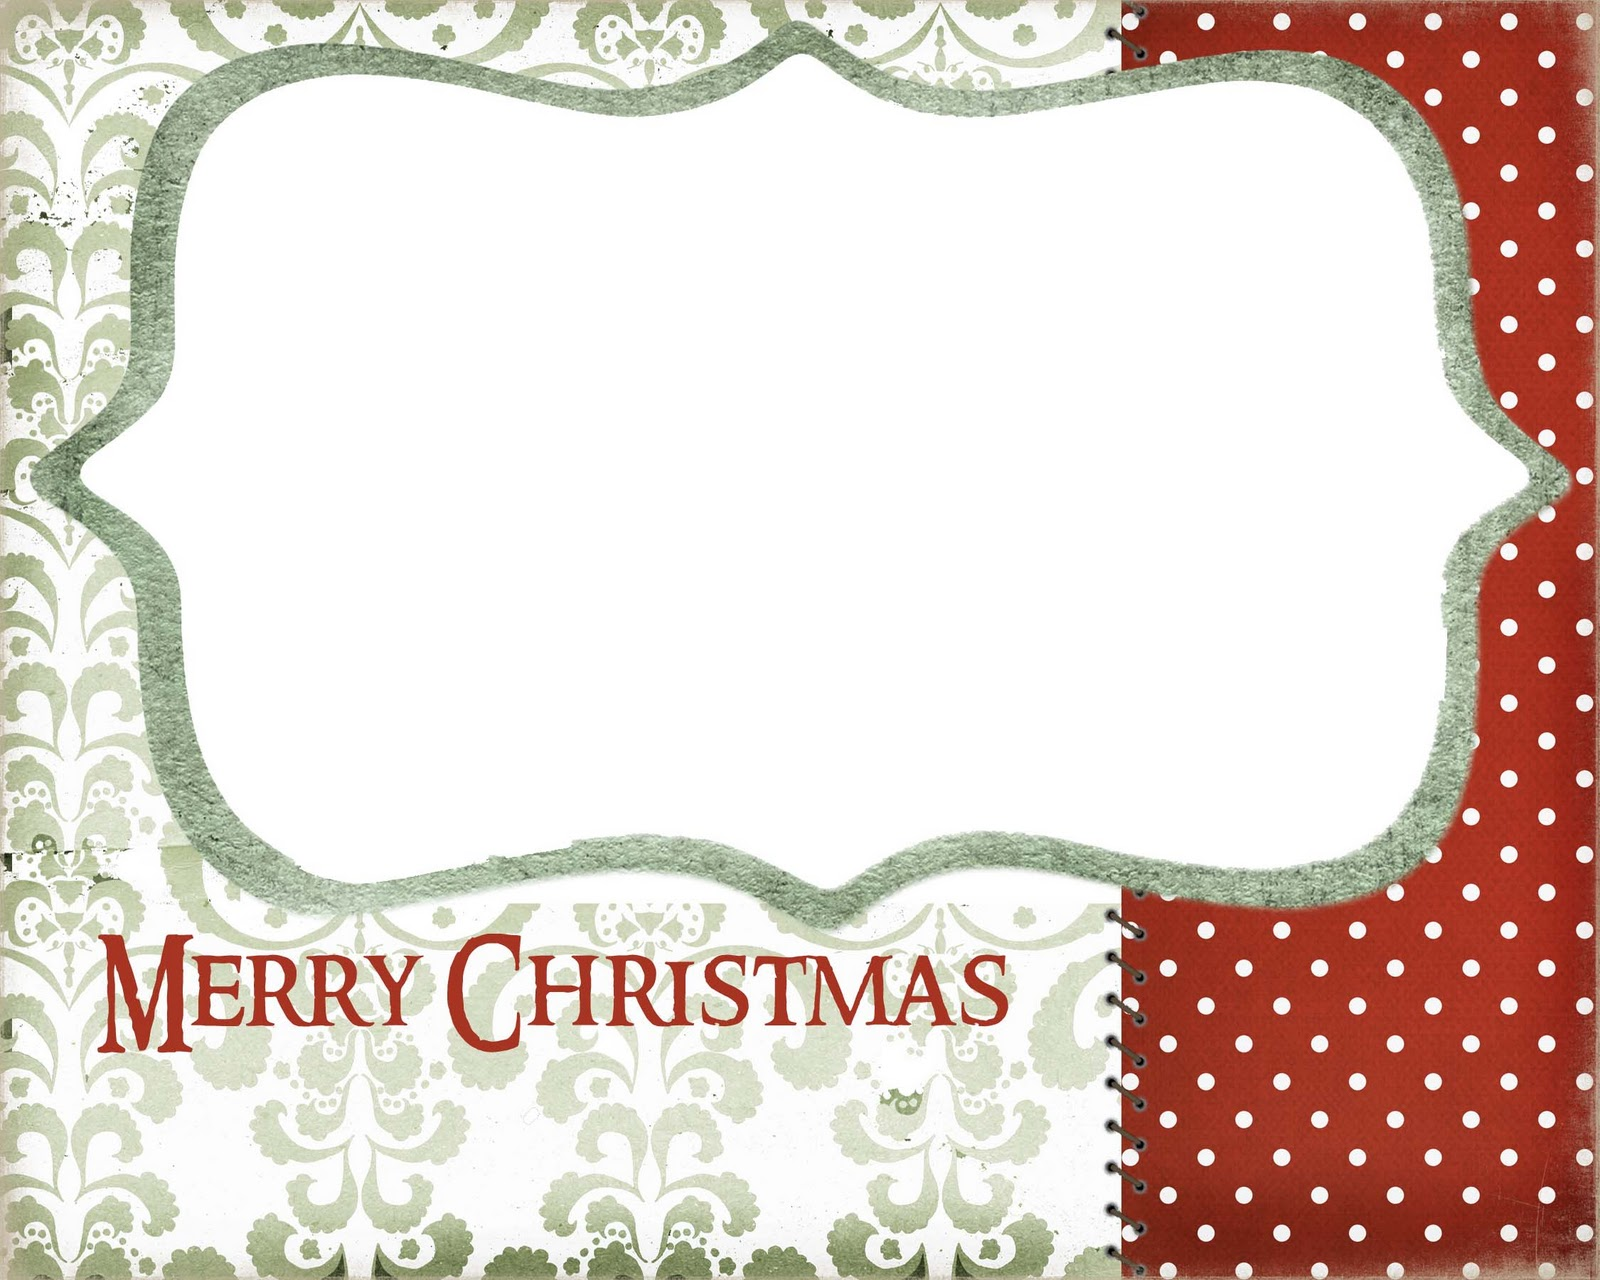 Christmas Card Display And 5 Free Printable Christmas Cards Guest 8KhFx4hk